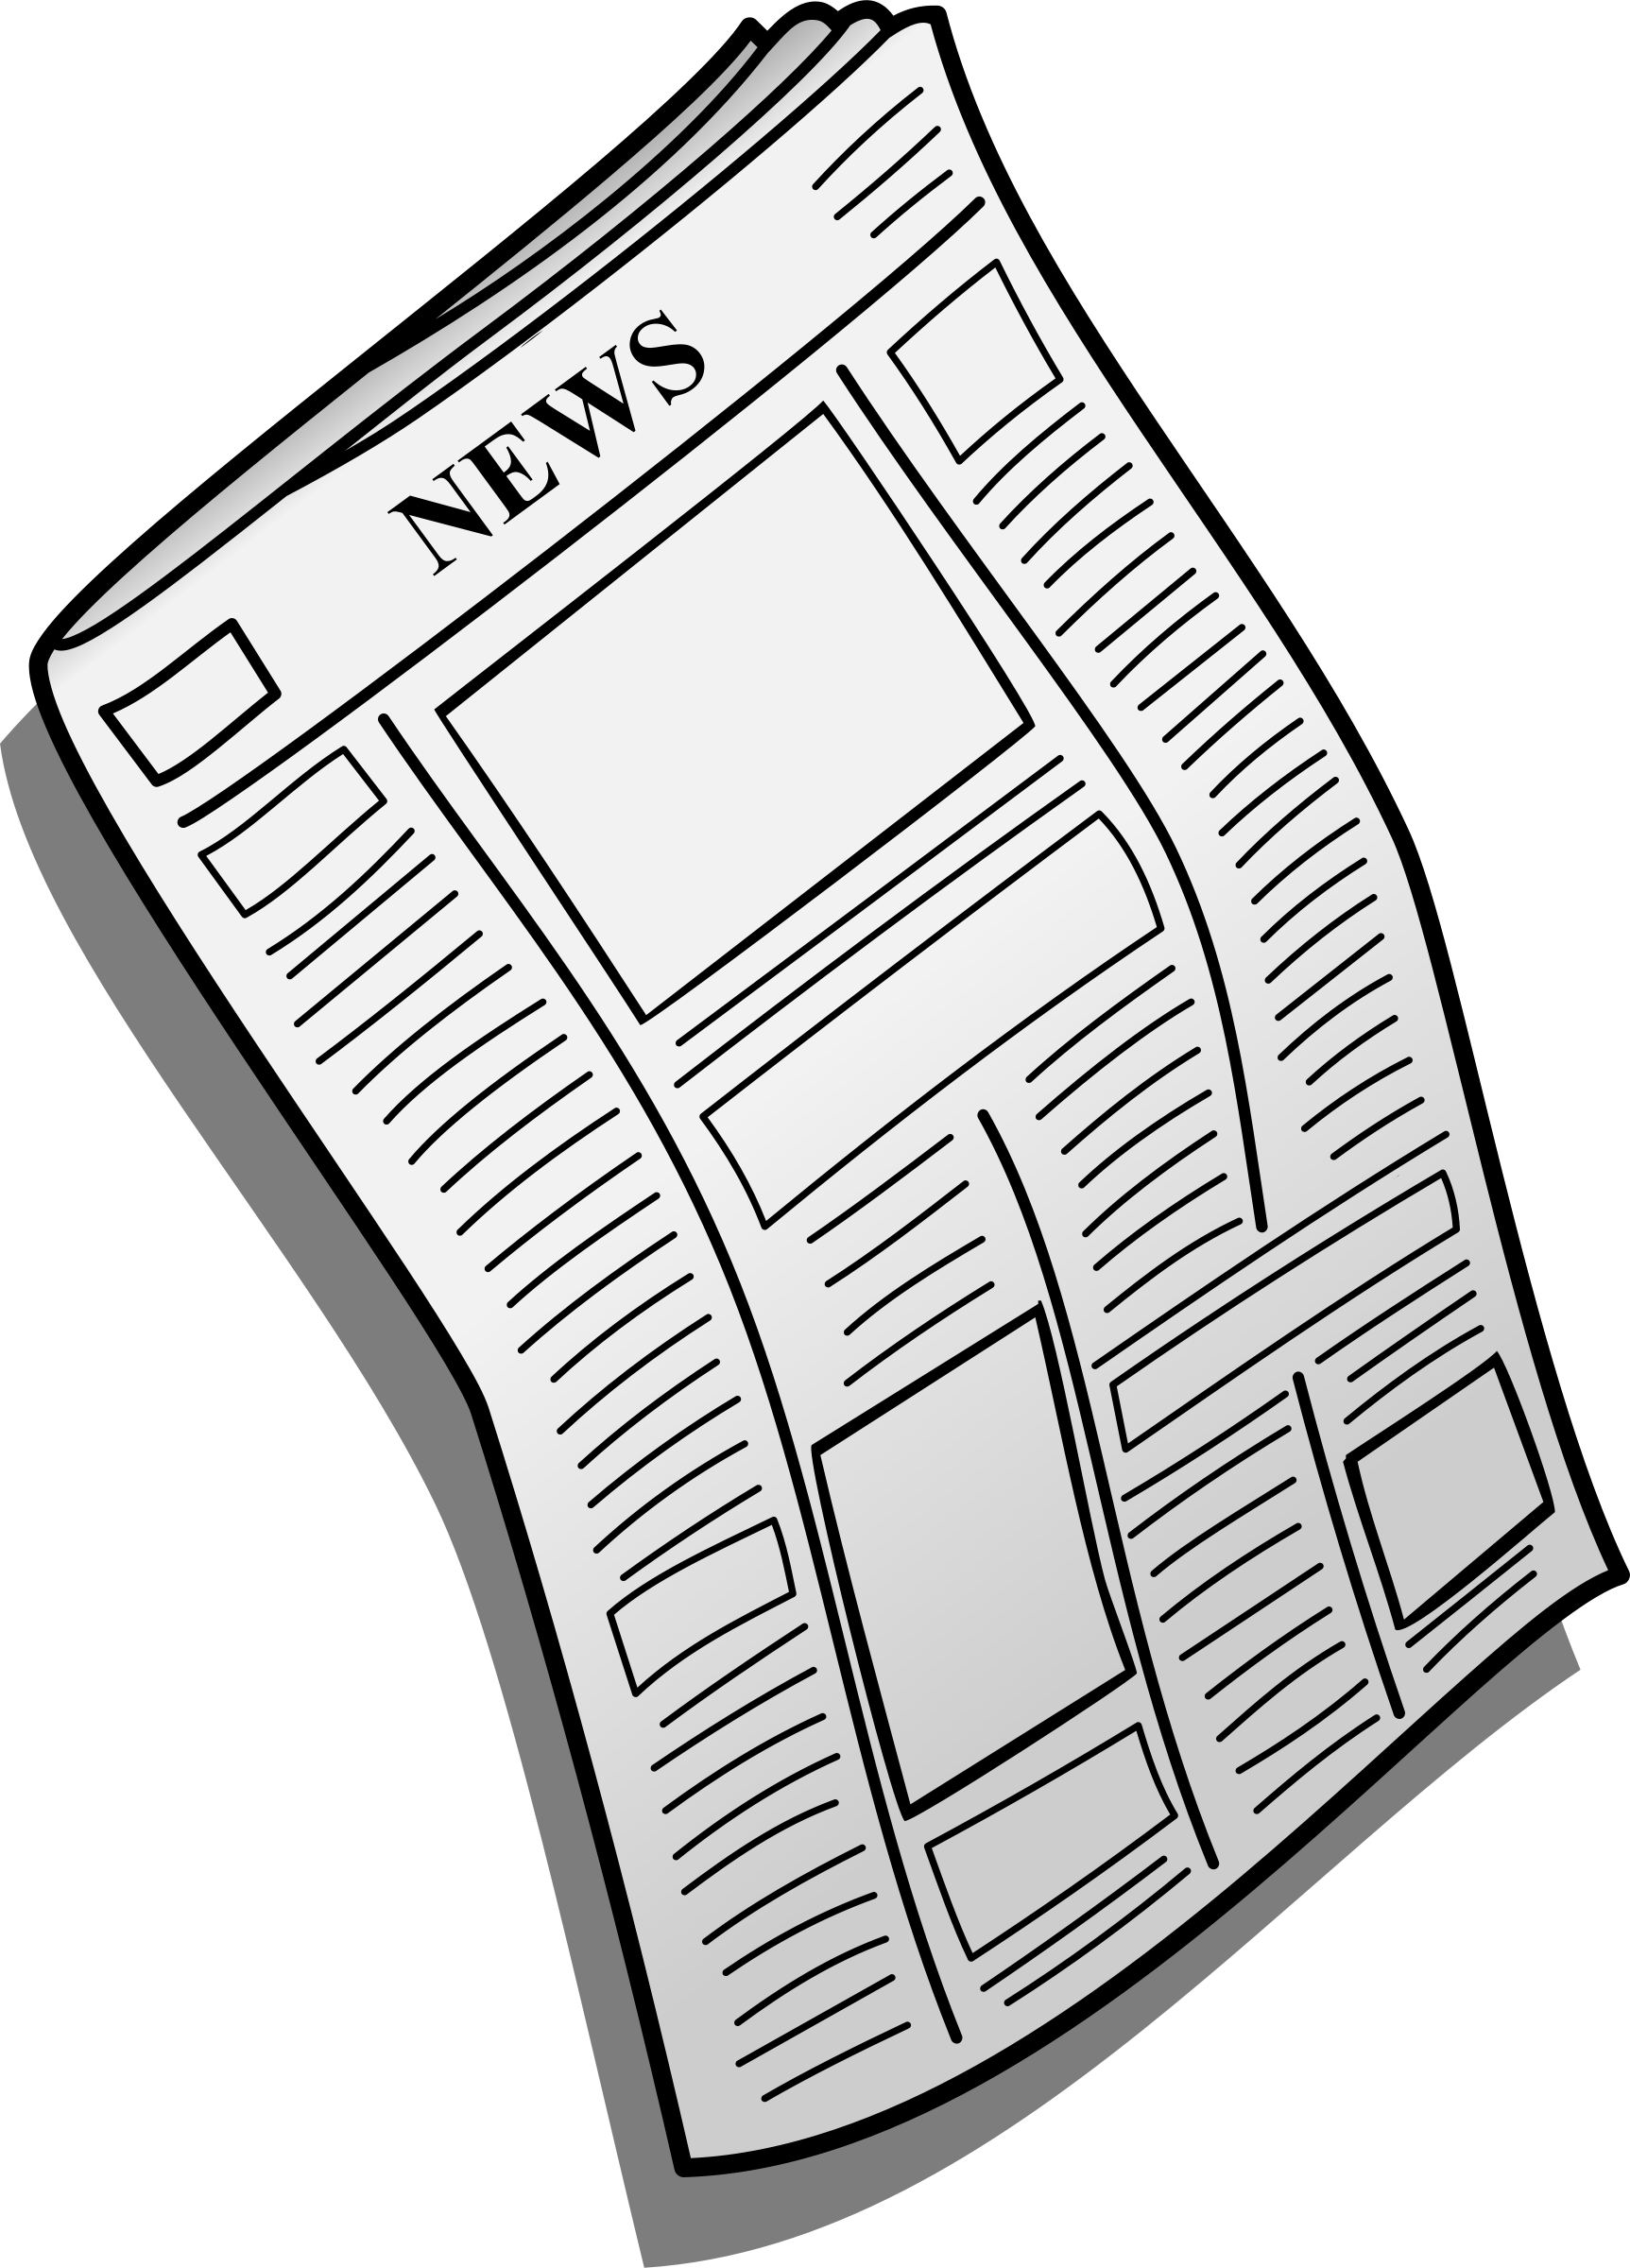 collection of newspaper. Report clipart article